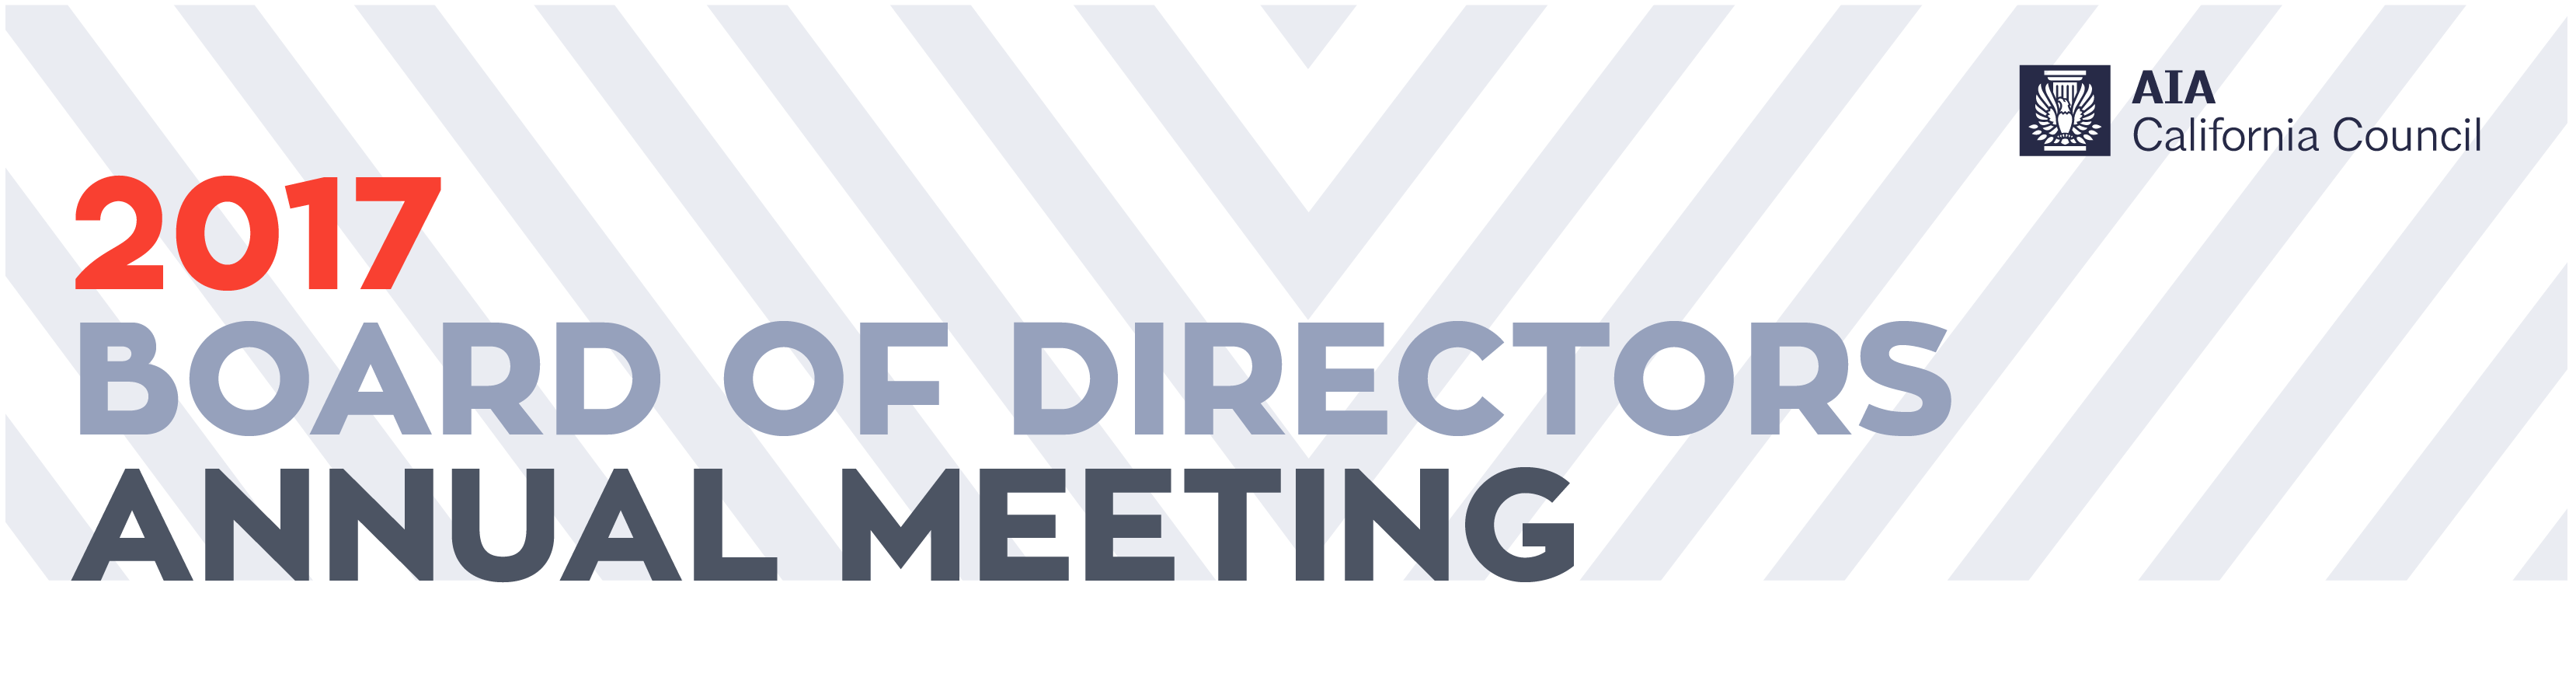 2017 AIACC Board of Directors Annual Meeting